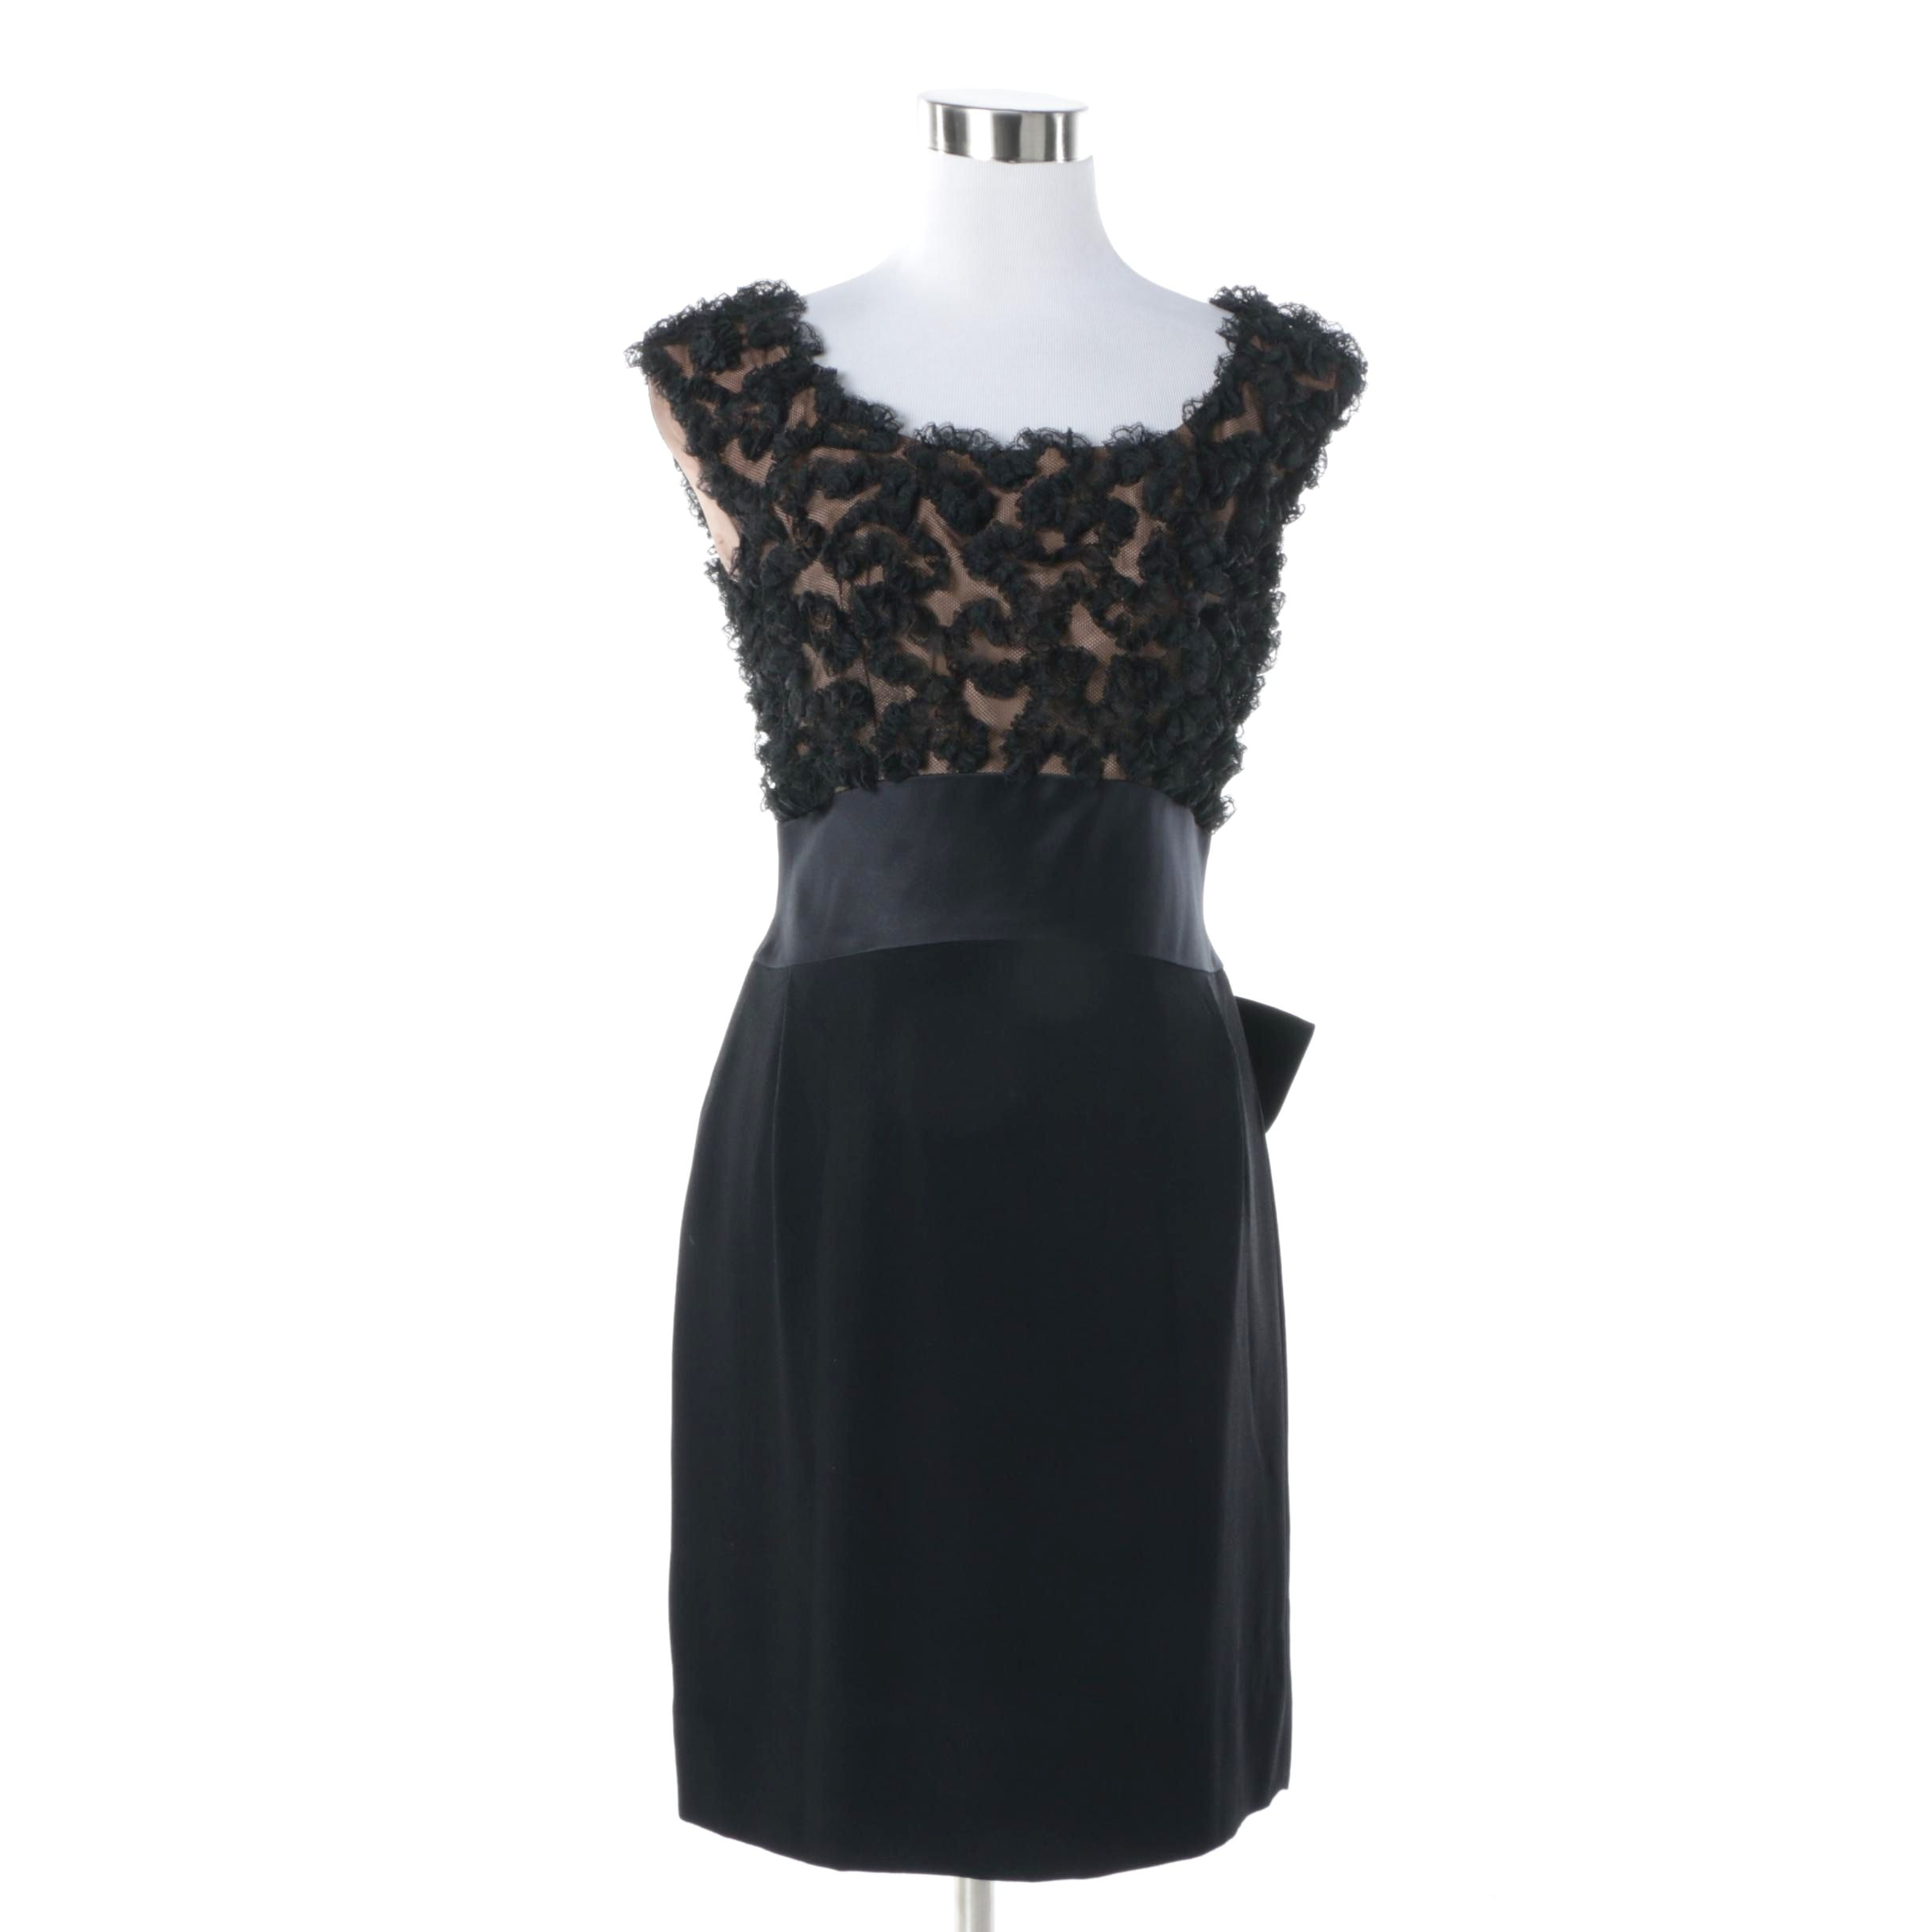 1960s Vintage Pattullo-Jo Copeland Black and Peach Lace Cocktail Sheath Dress